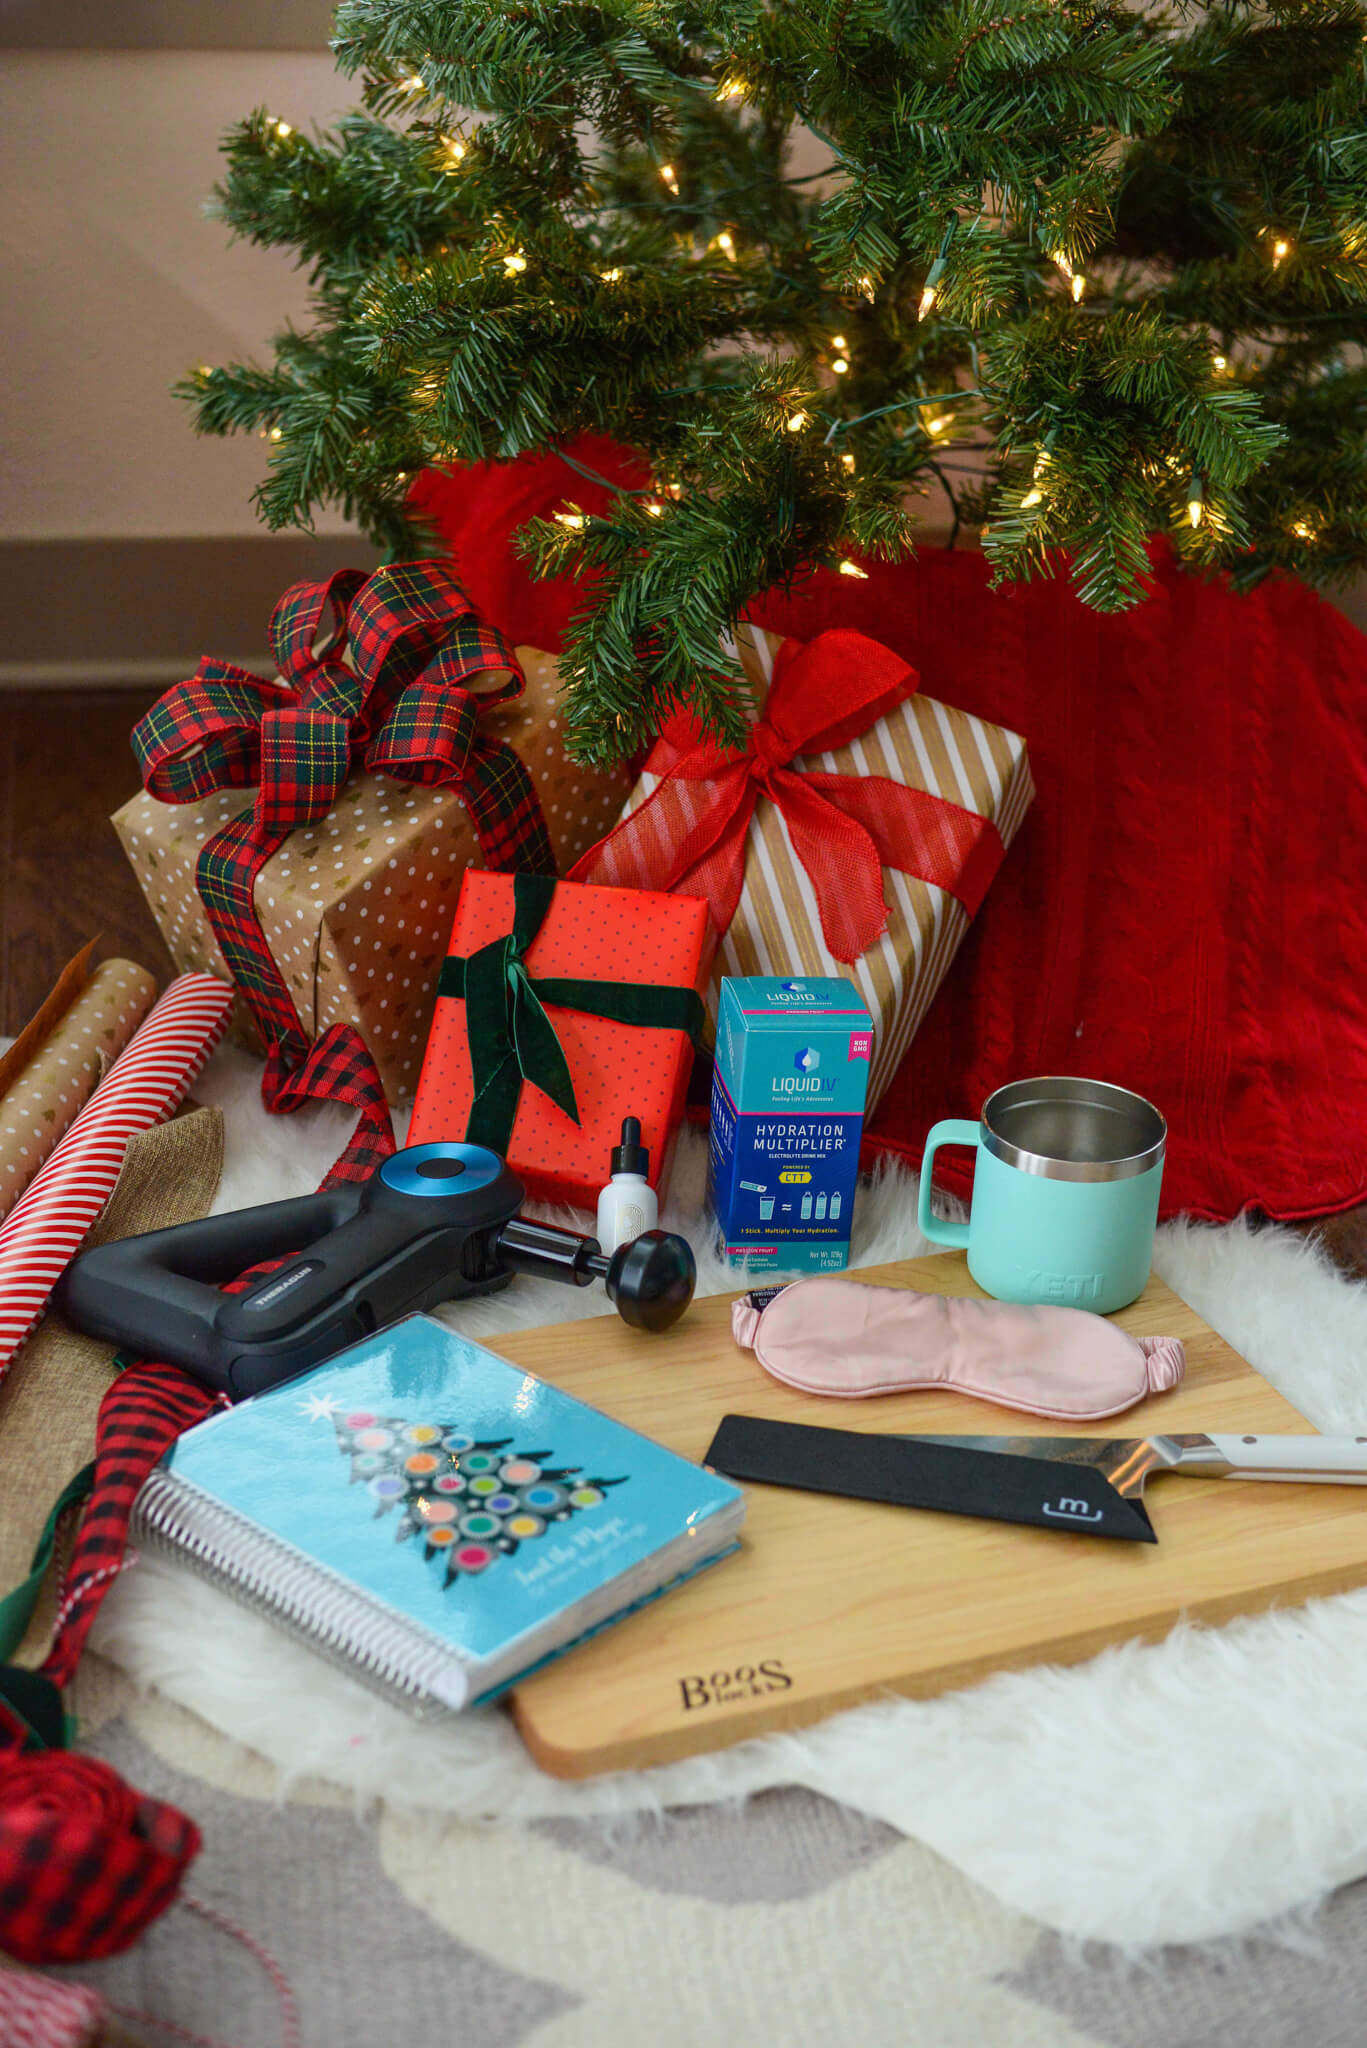 2020 Holiday Gift Guide for the Girl Boss, Home Chef, Frequent Traveler, Clean Beauty and Man in Your Life